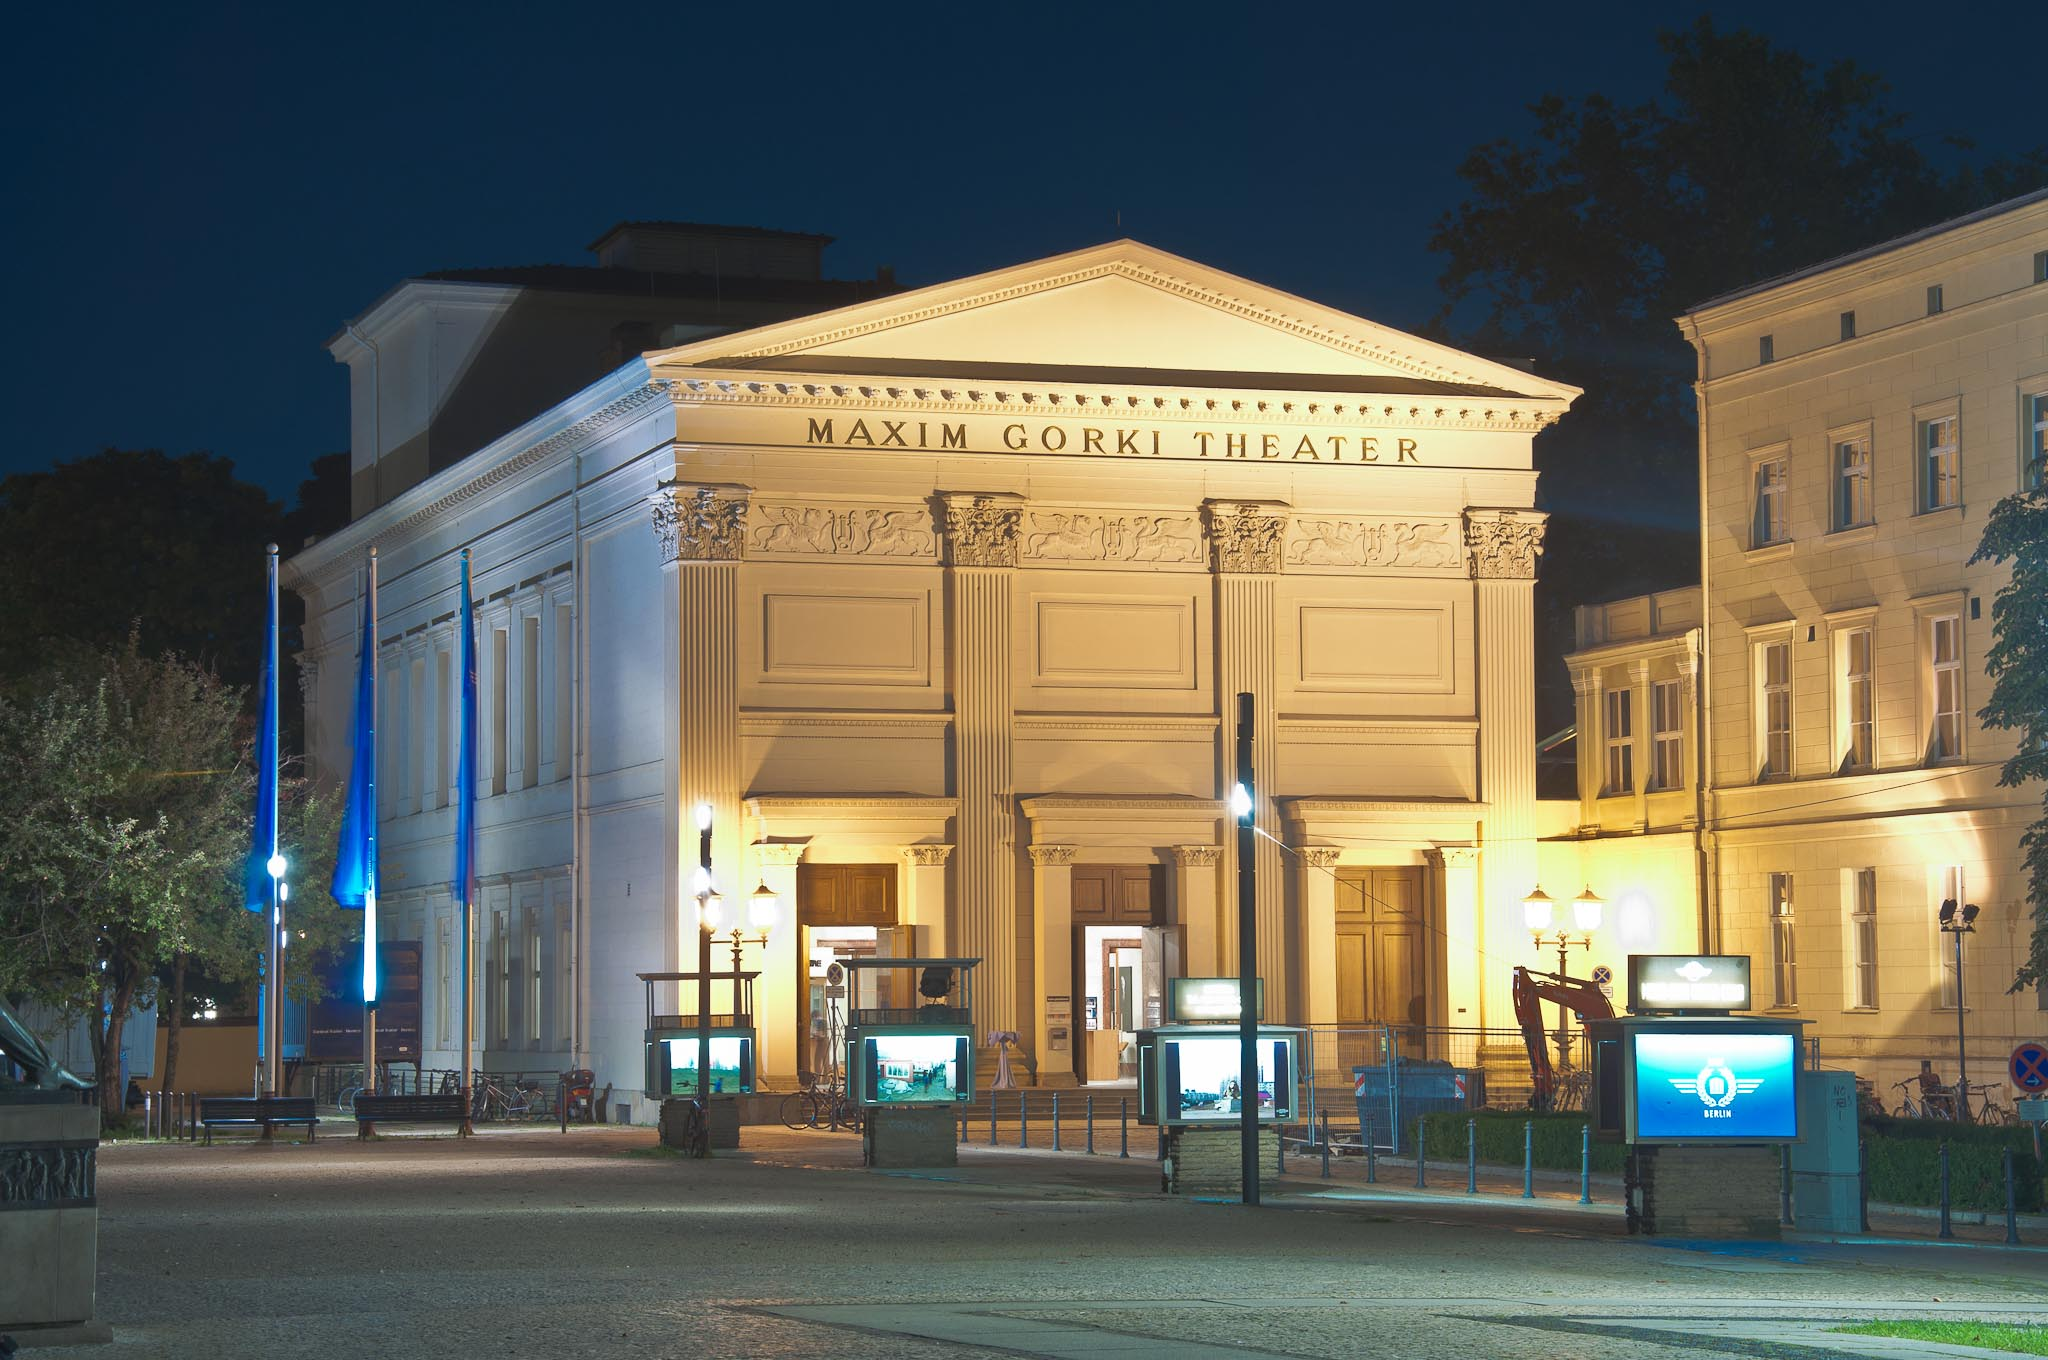 http://upload.wikimedia.org/wikipedia/commons/4/45/Berlin_Maxim_Gorki_Theater.jpg